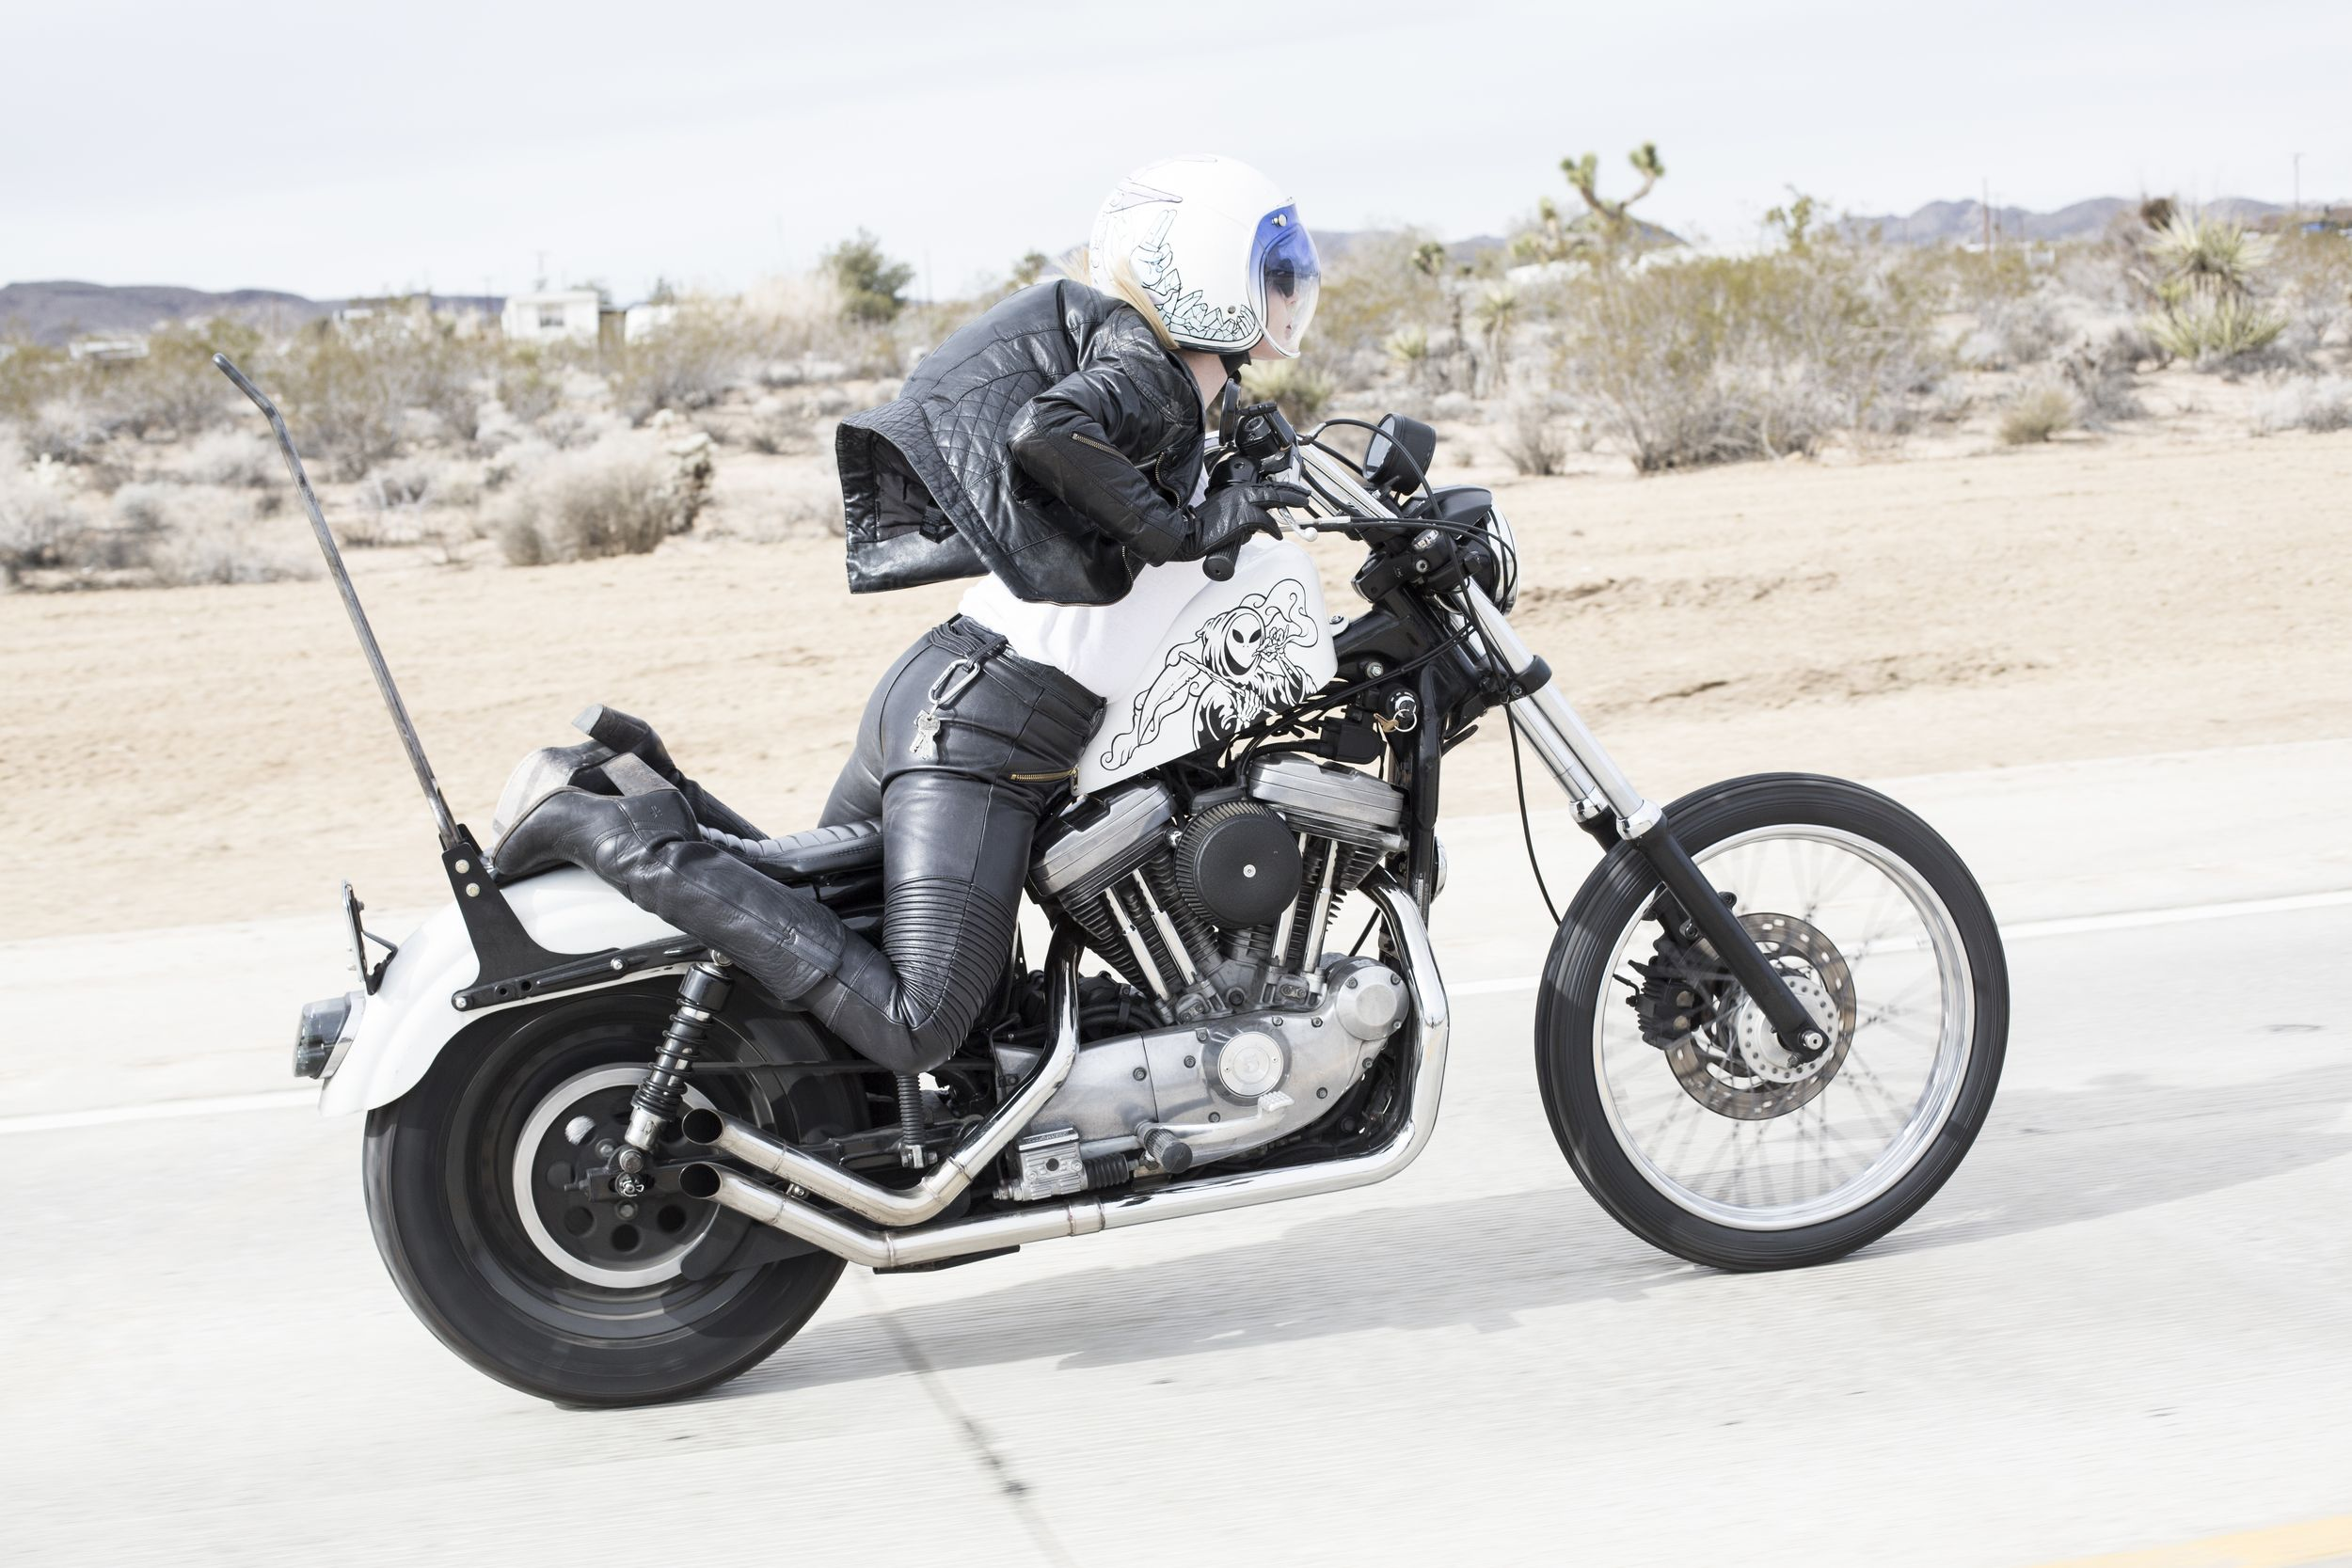 The Women's Moto Exhibit documents the new wave of modern female  motorcyclists.